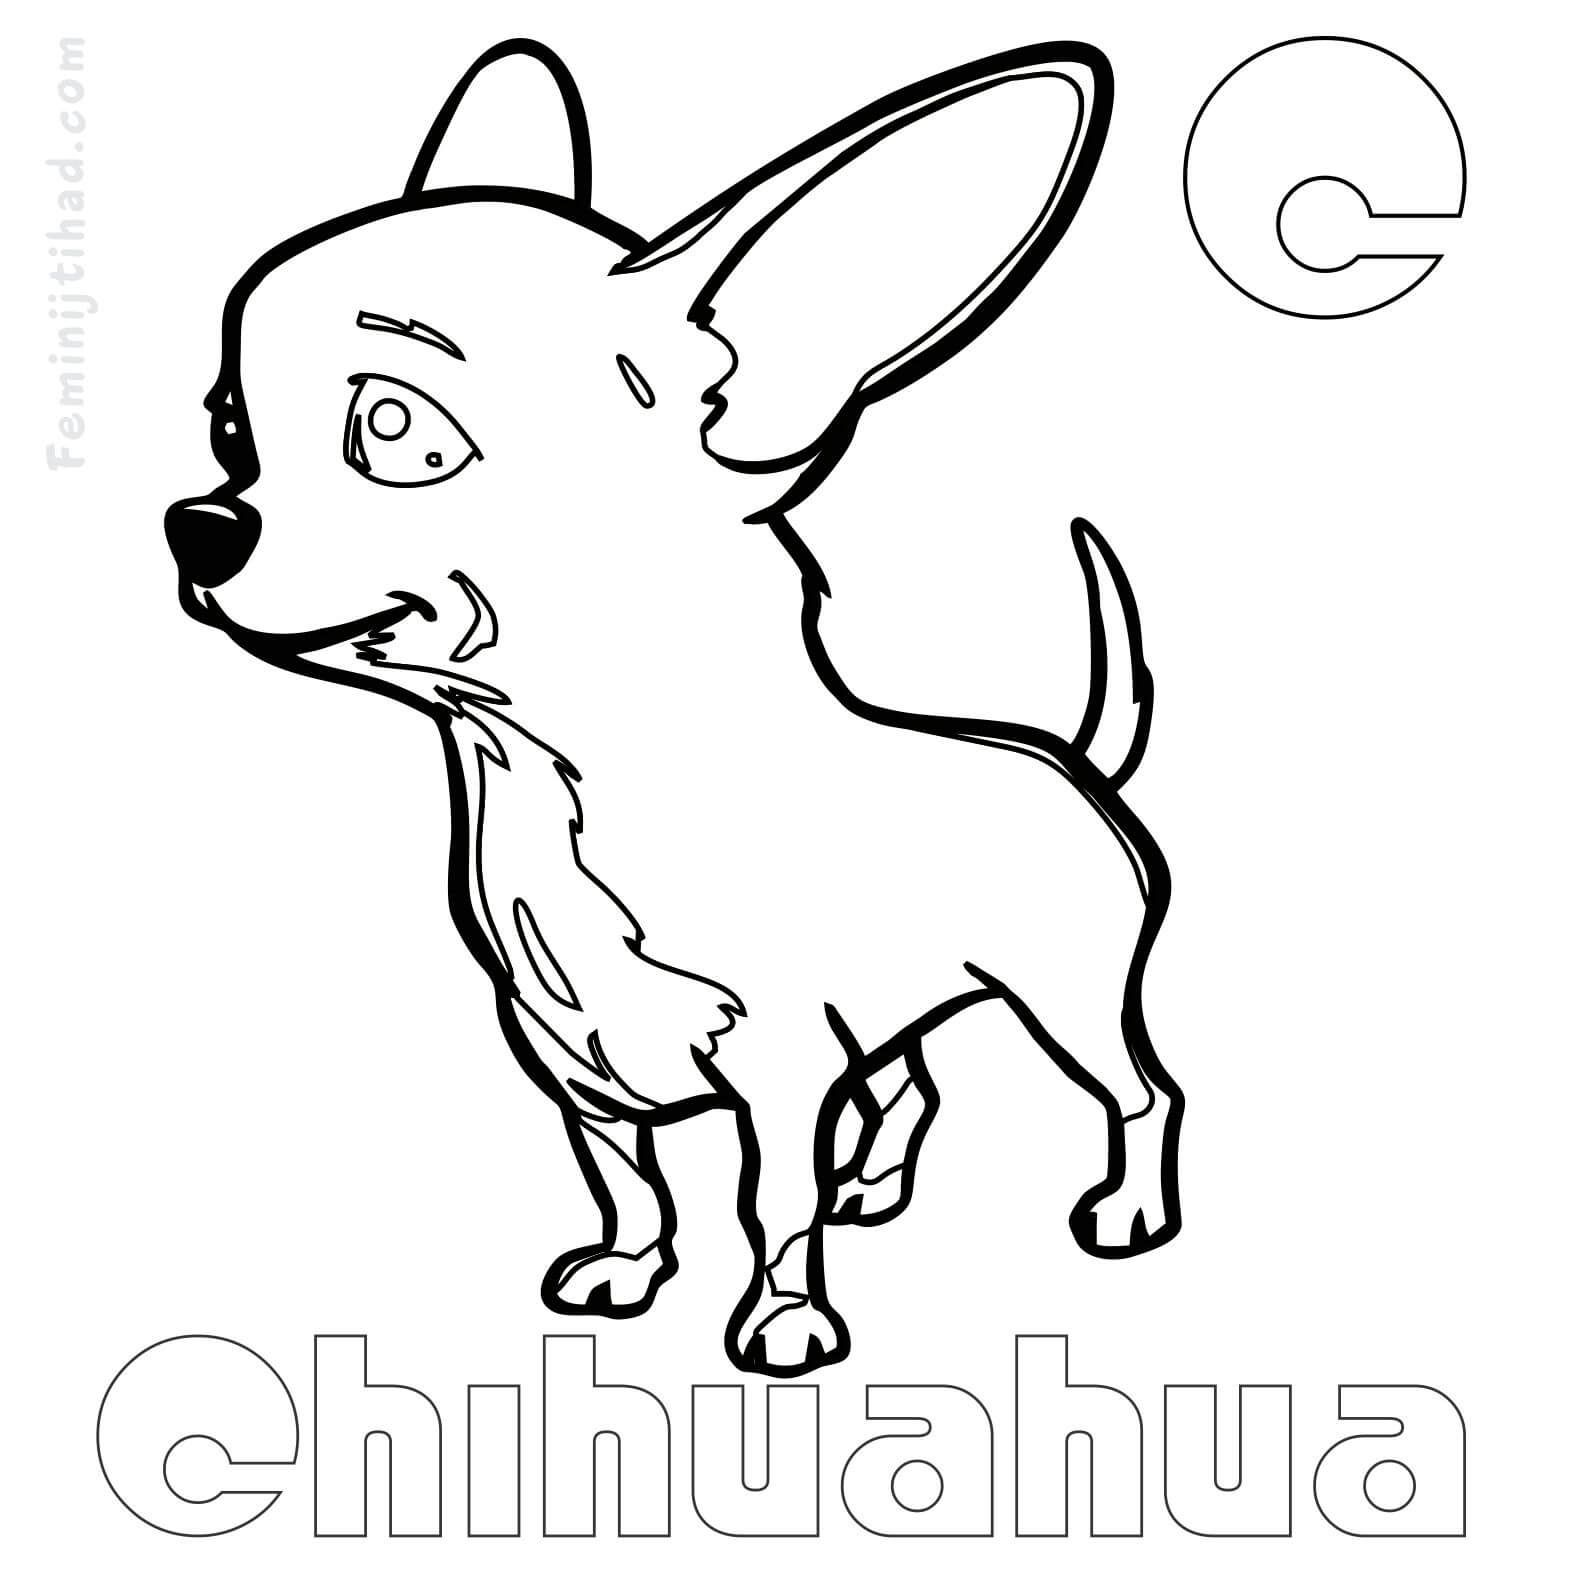 Printable Chihuahua Coloring Pages Free Coloring Sheets Dog Coloring Book Dog Coloring Page Puppy Coloring Pages [ 1575 x 1575 Pixel ]